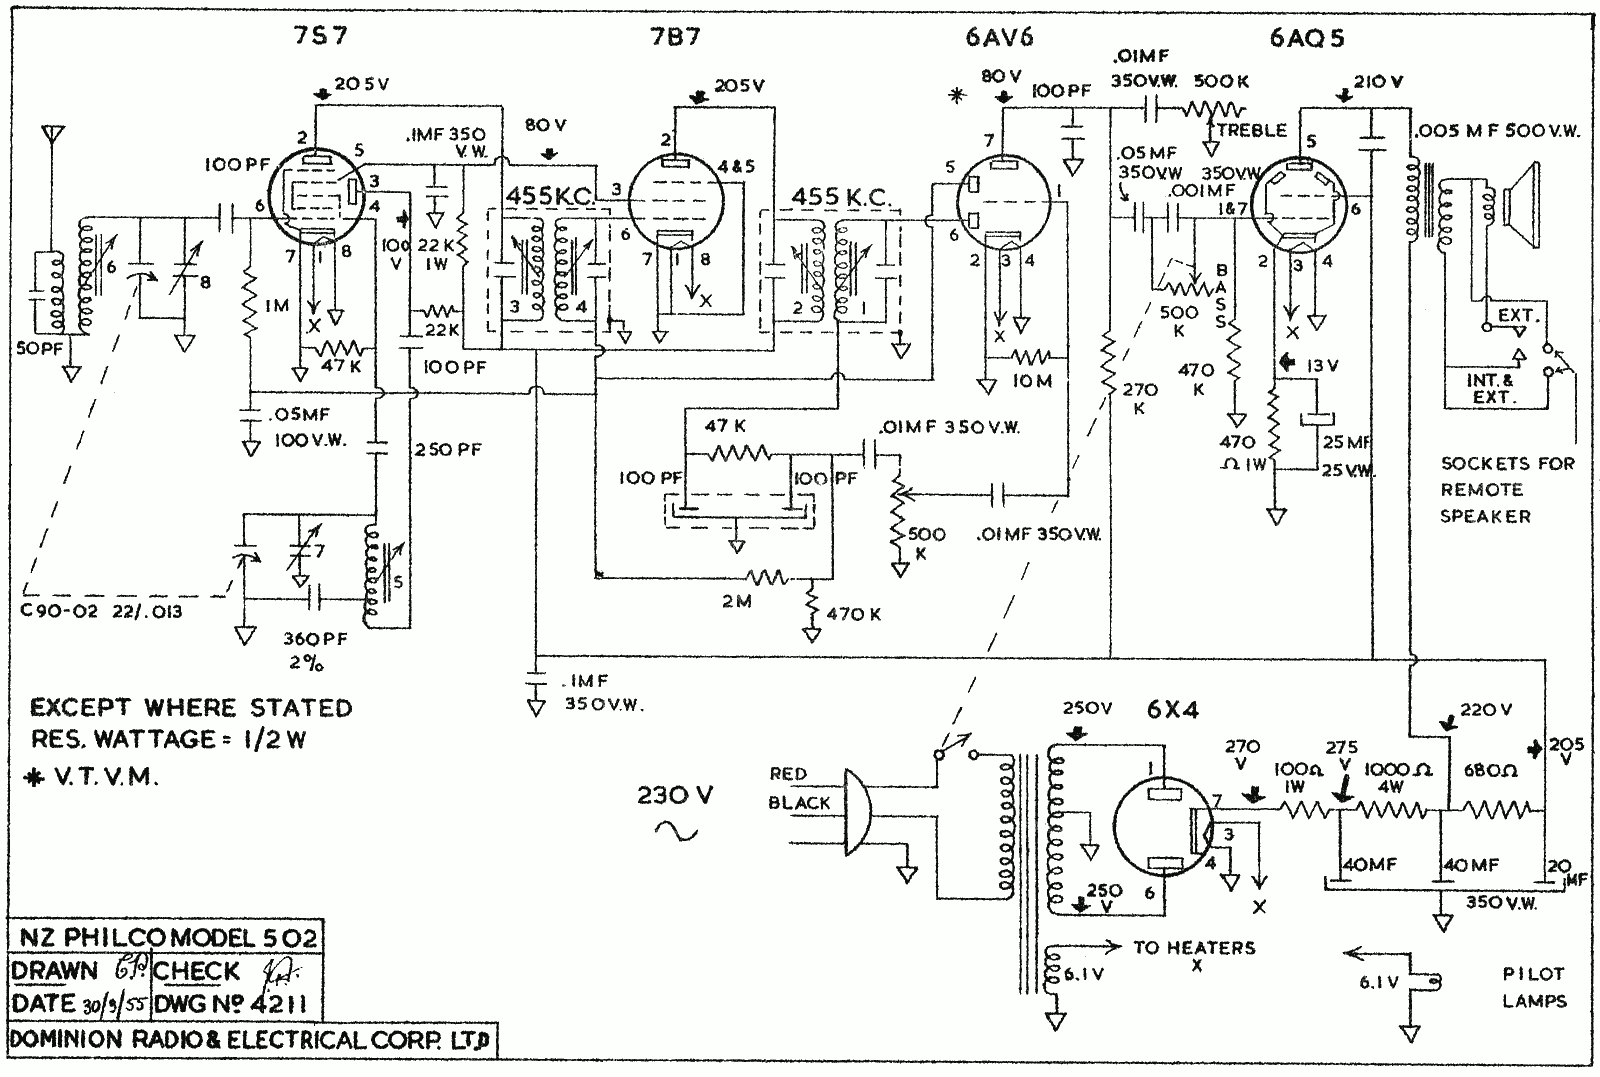 1955 Philco  model 502 schematic